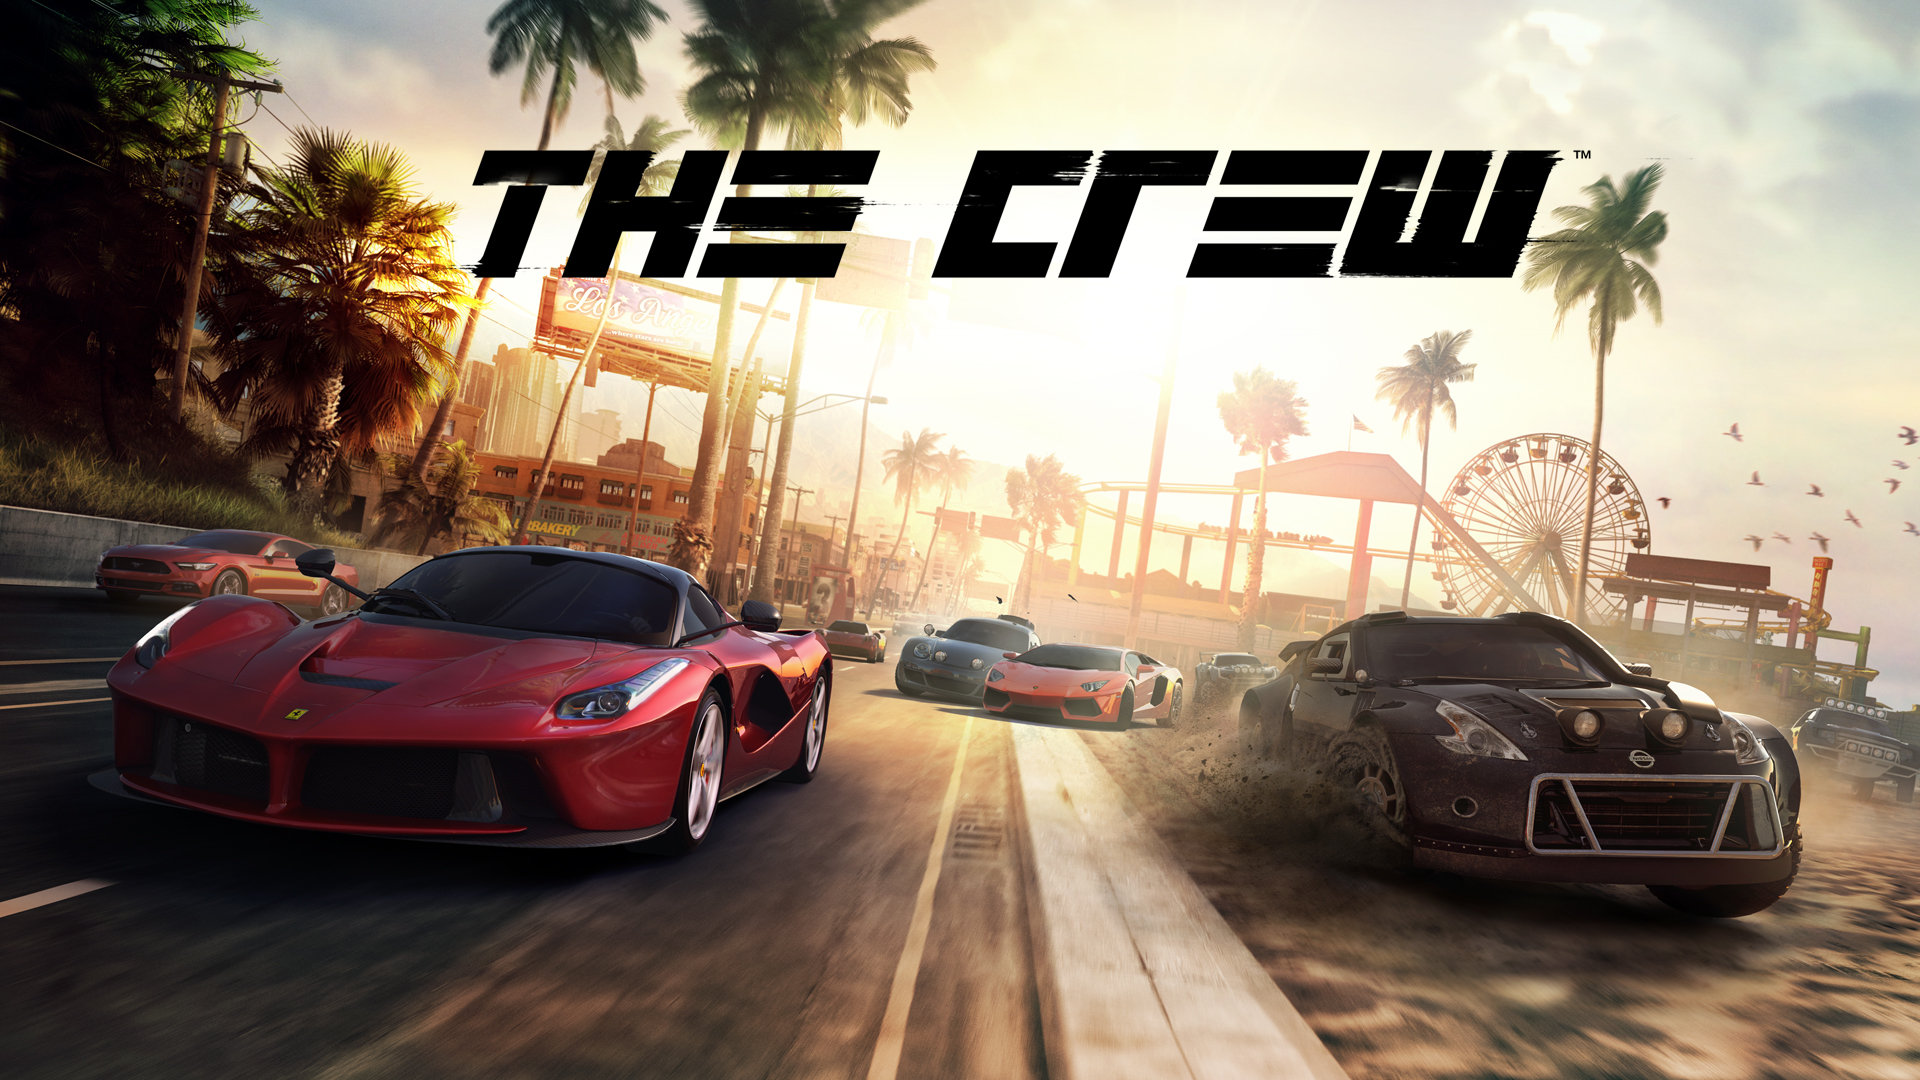 <b>The Crew Wallpaper</b> and Background | 1905x1089 | ID:467570